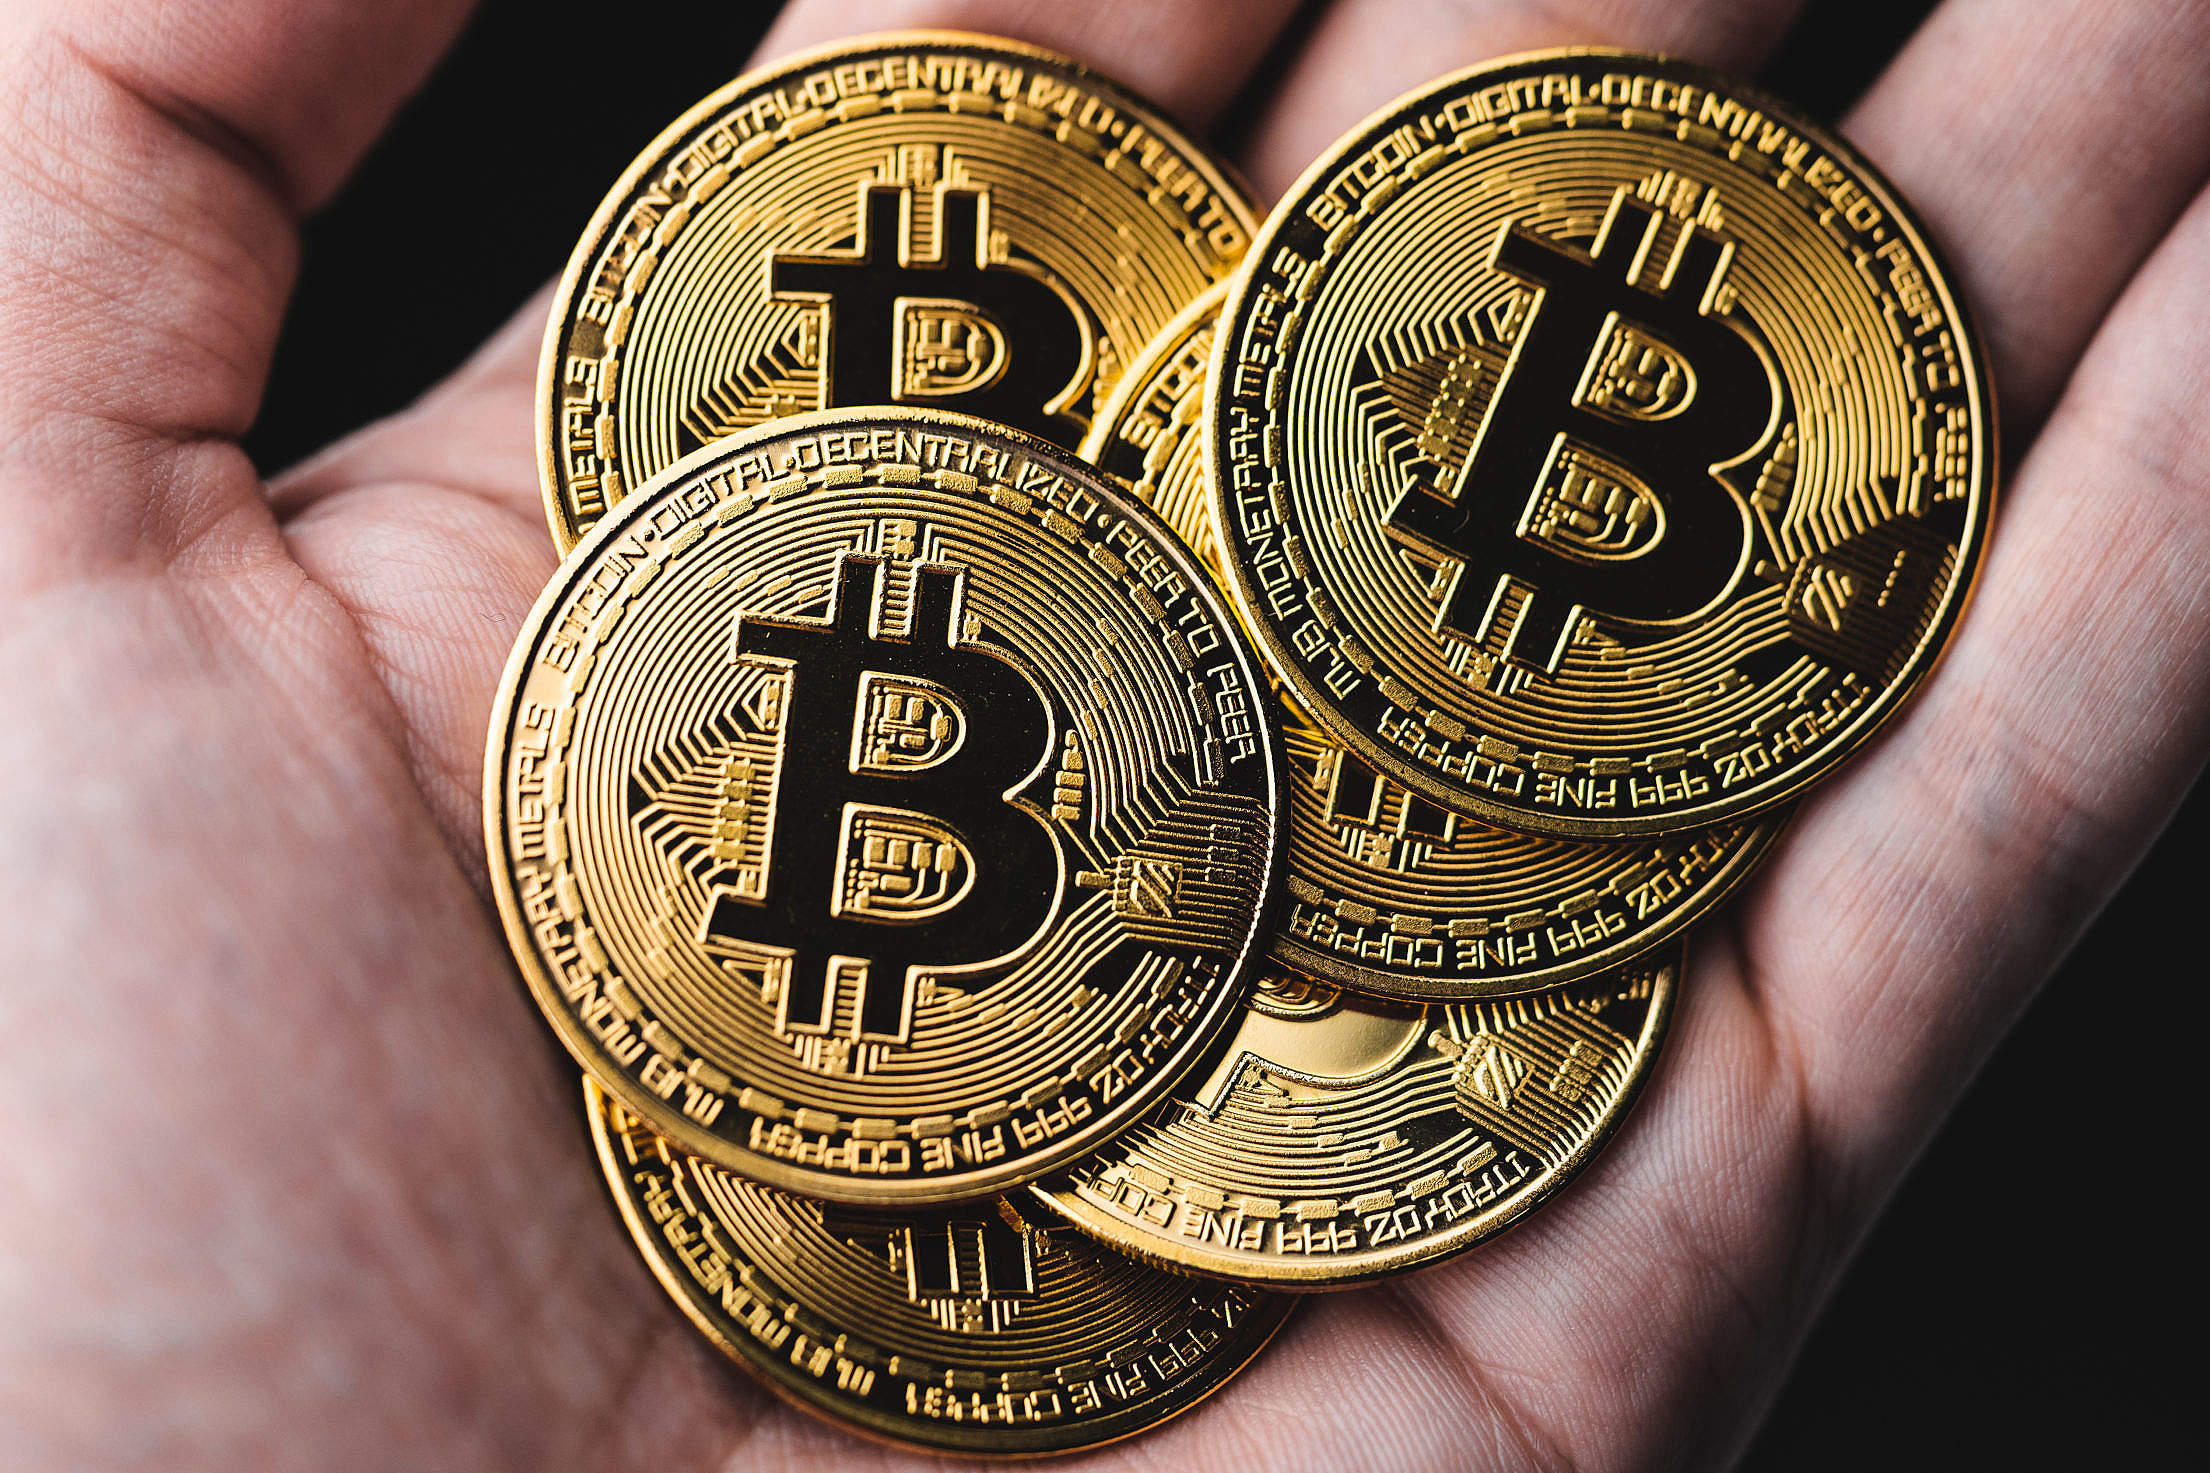 Gold Bitcoins in a Hand Free Stock Photo